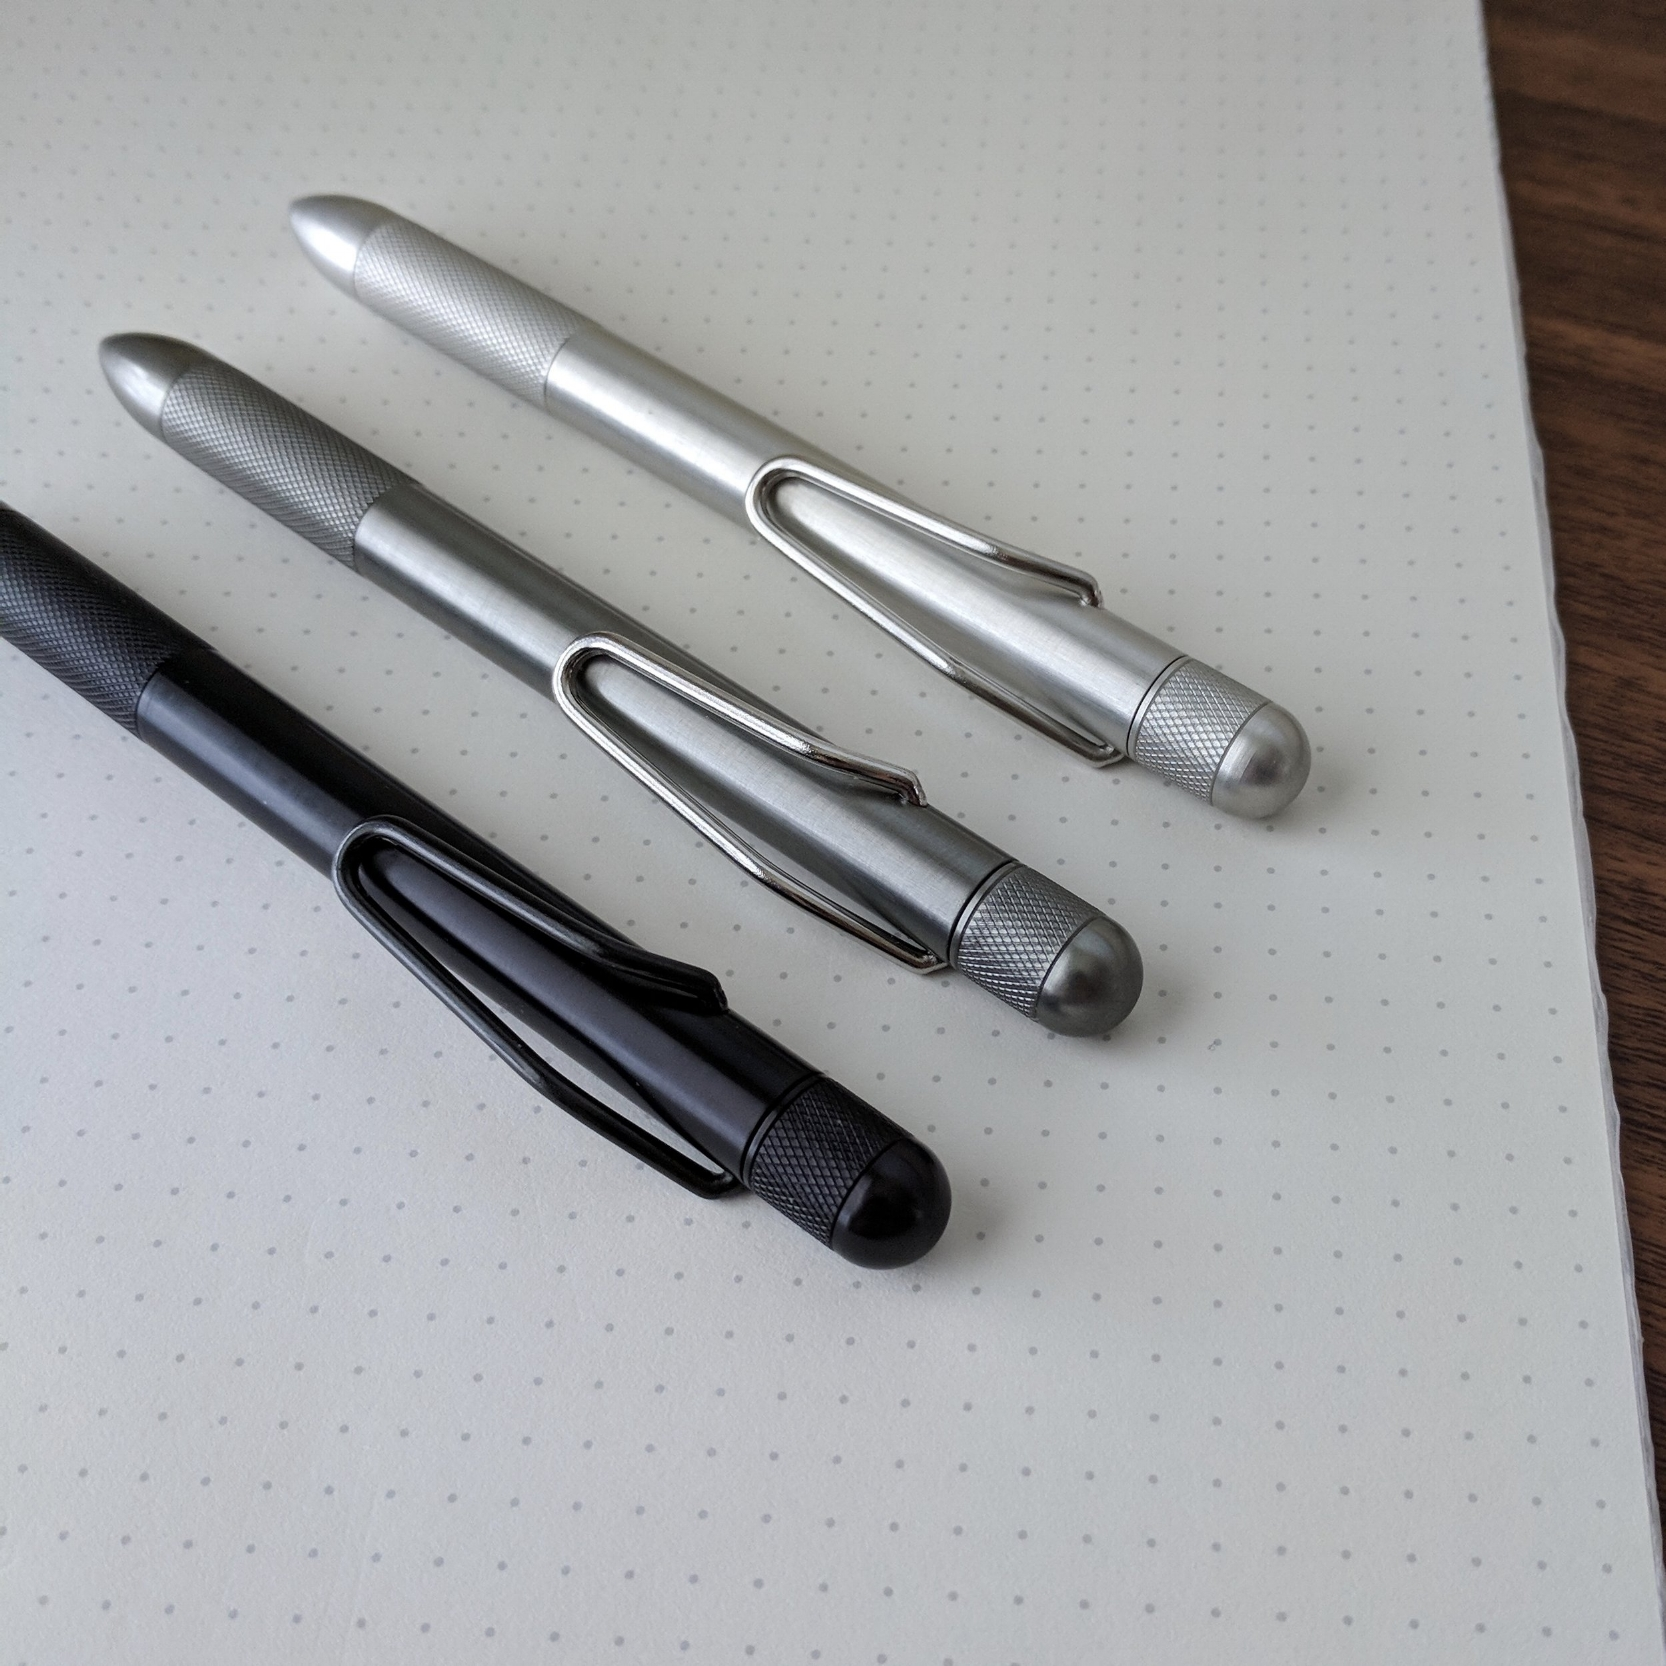 The RIIND Pen is currently available in three colors: Black, Gray, and Clear Anodized. You can order the black pen with either a black or polished clip.